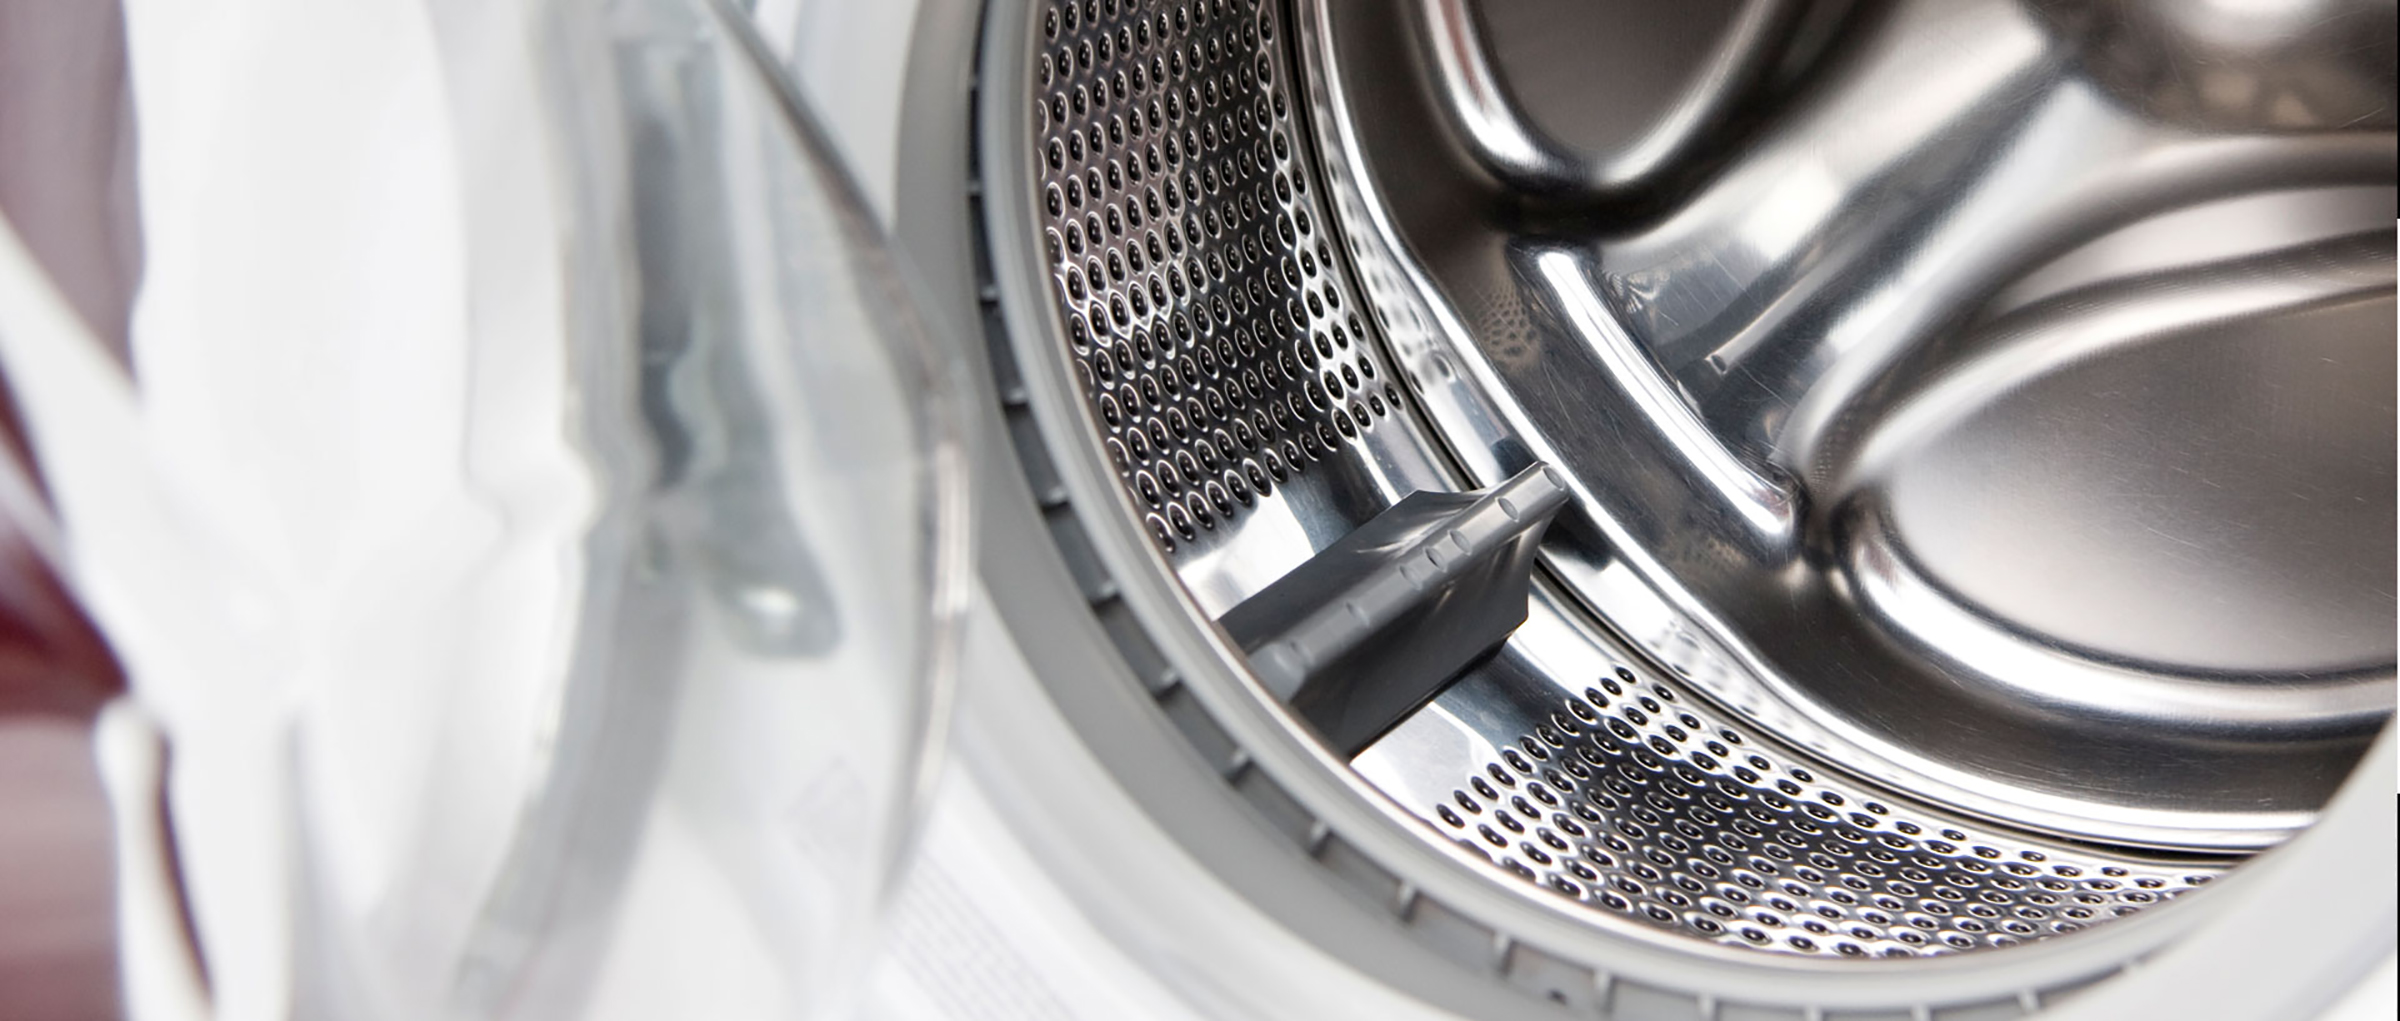 Cleaning Your Front Load Washing Machine